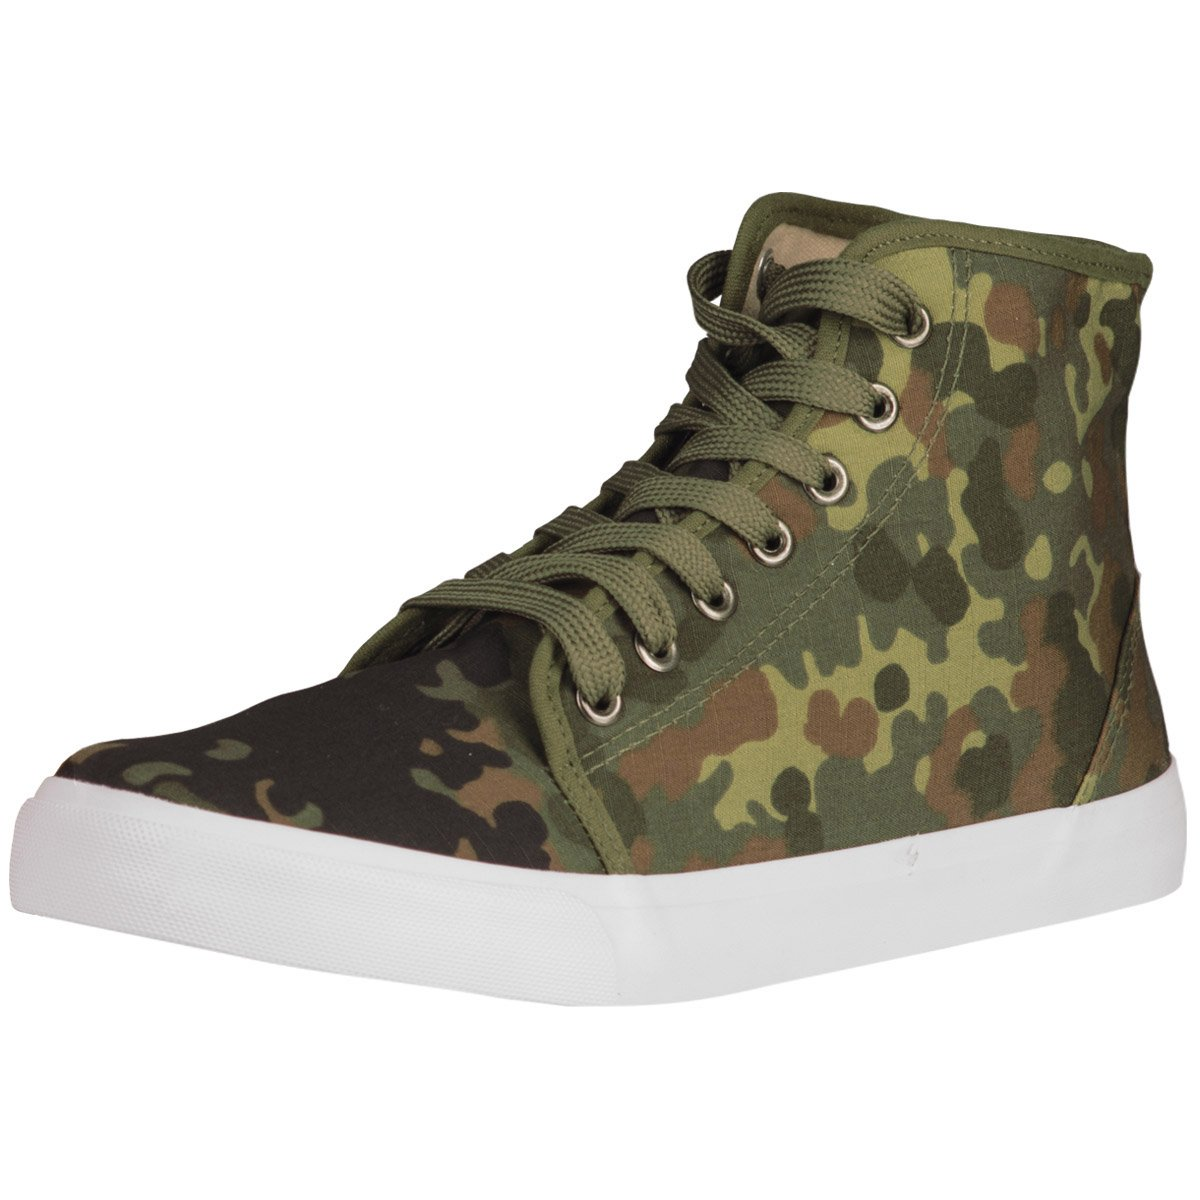 Mil-Tec Men's Army Sneaker Flecktarn size 9 UK / 10 US